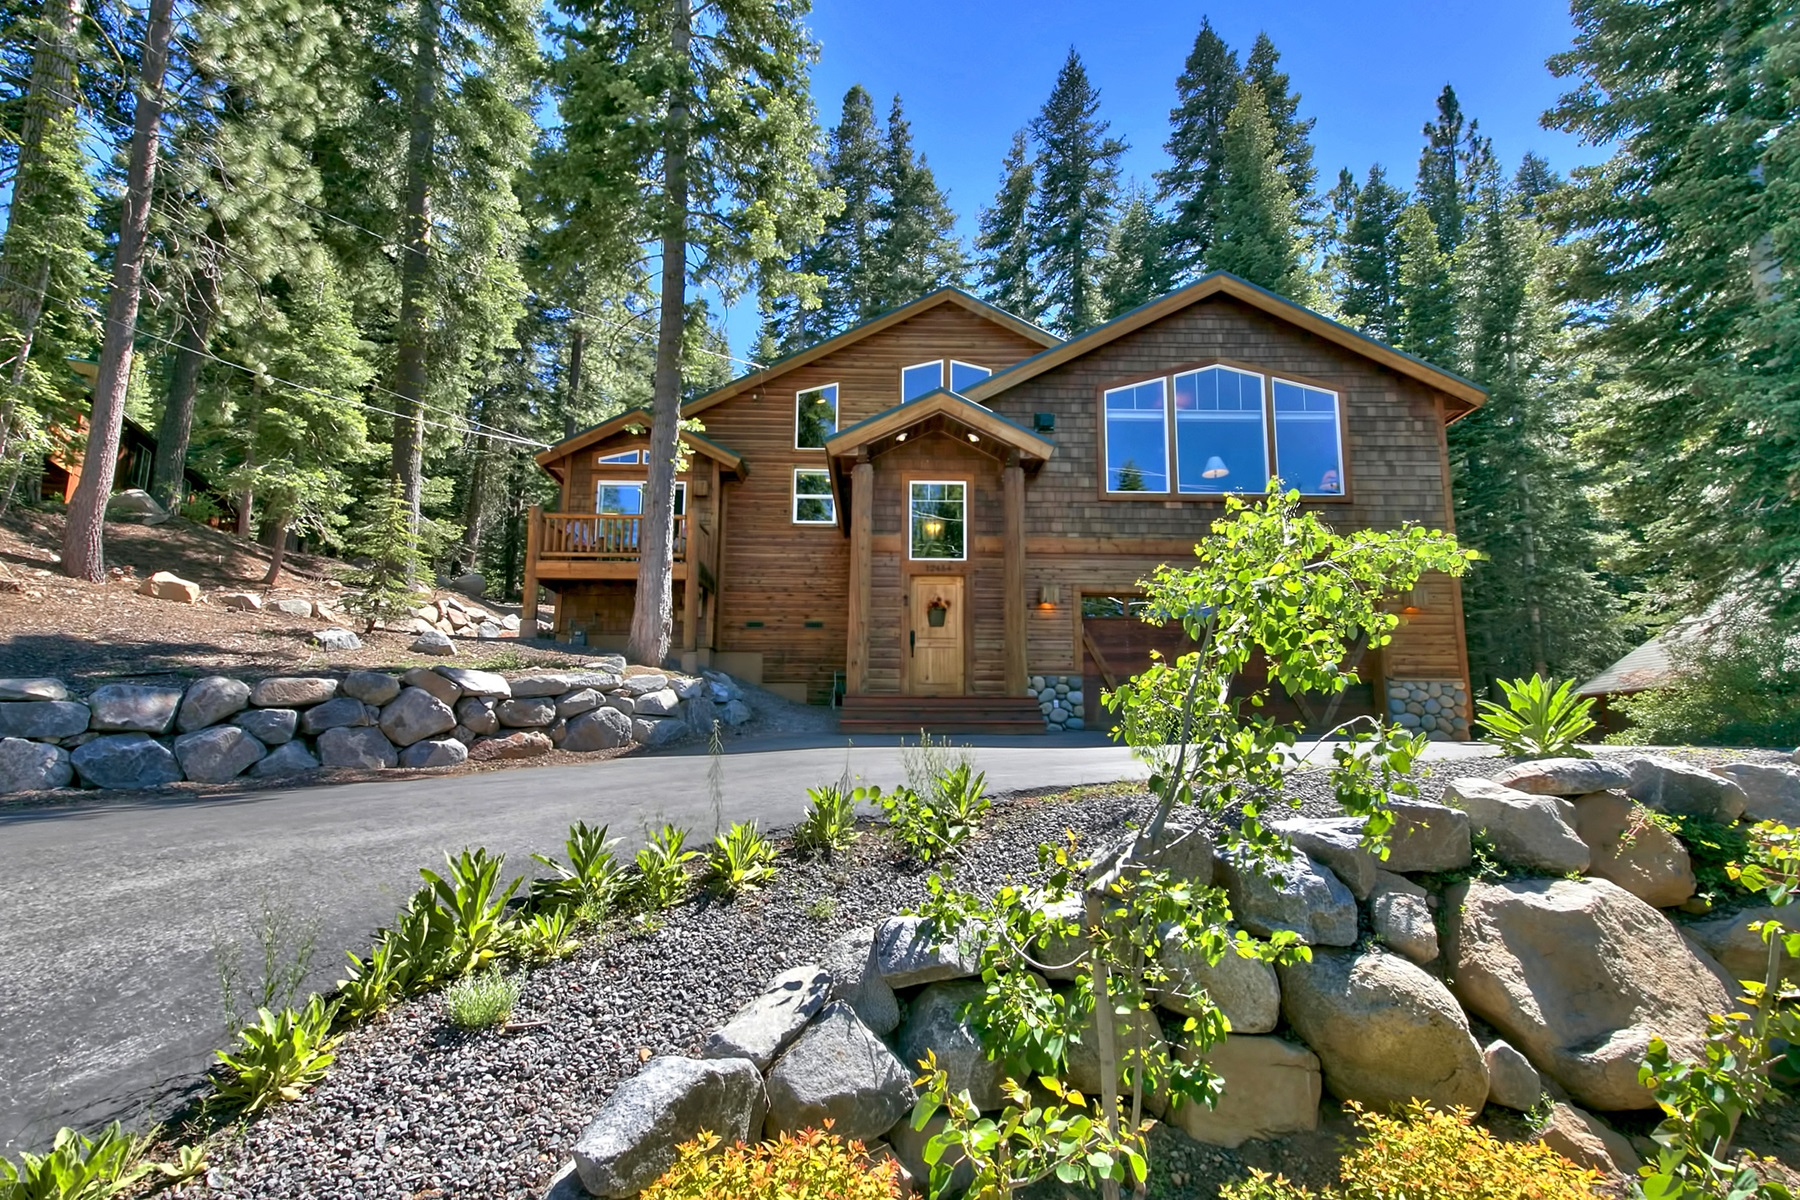 Single Family Home for Active at 12454 Skislope Way Truckee, California 96161 United States